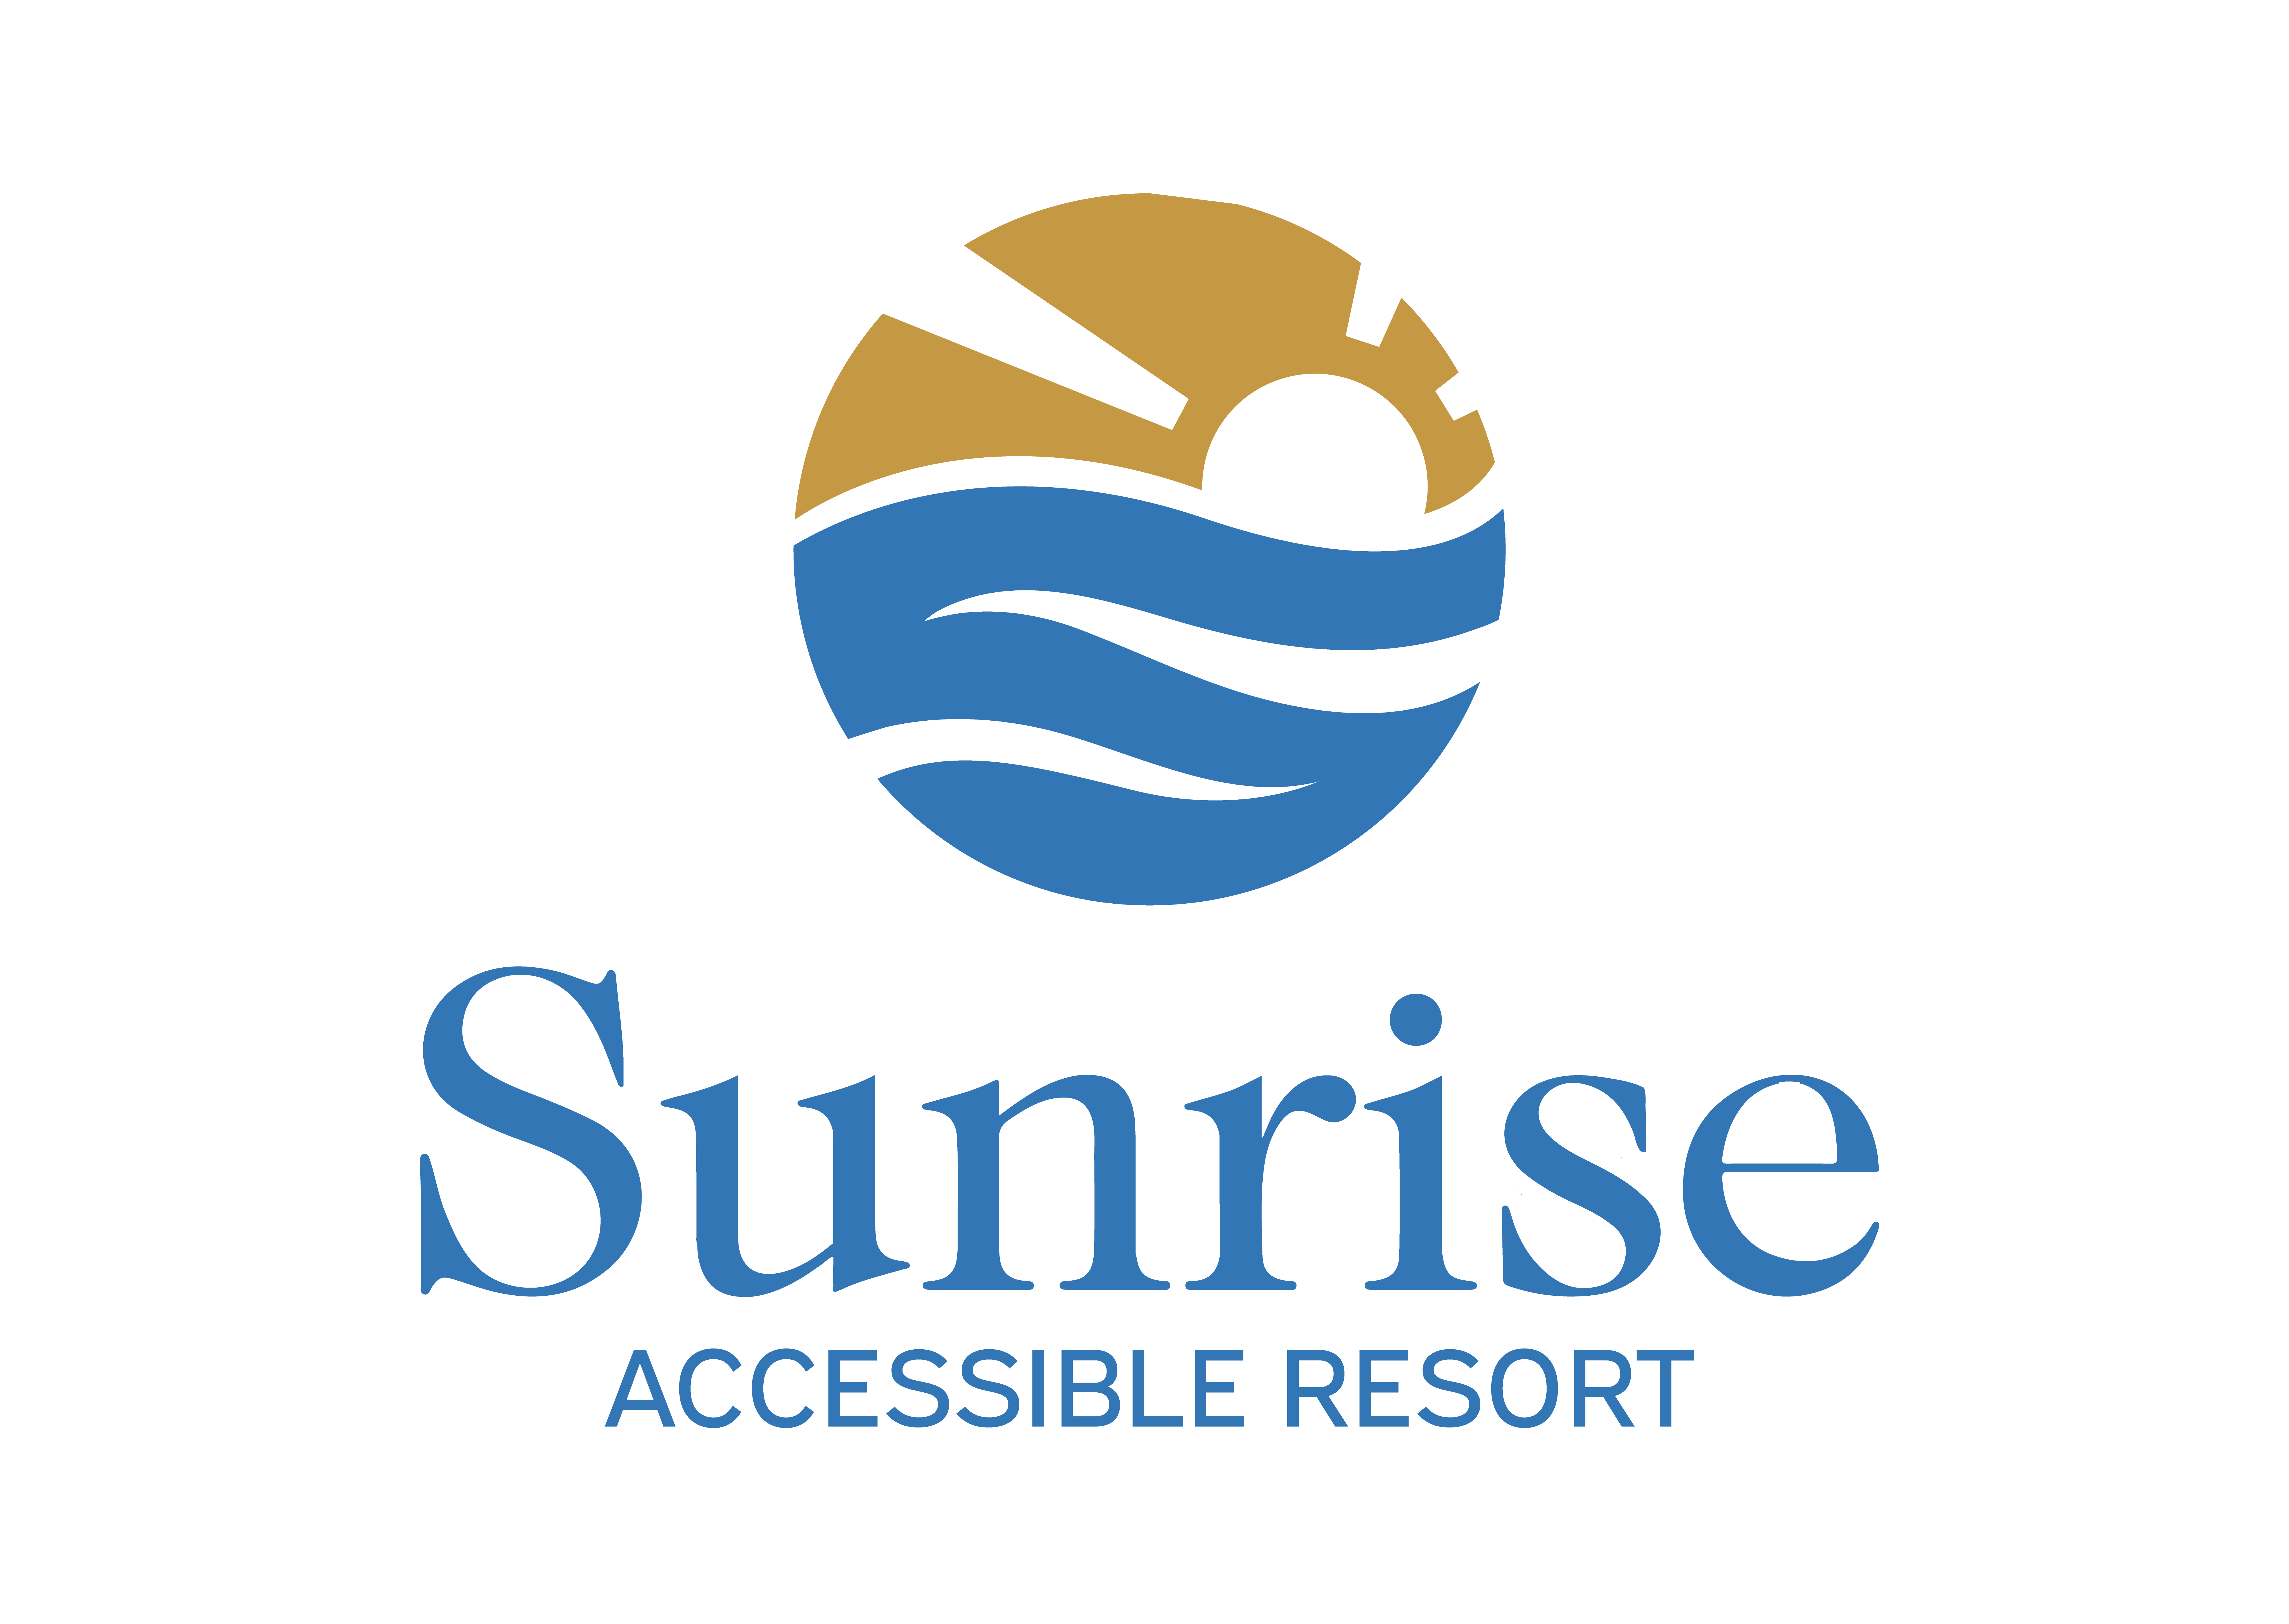 Sunrise Accessible Resort